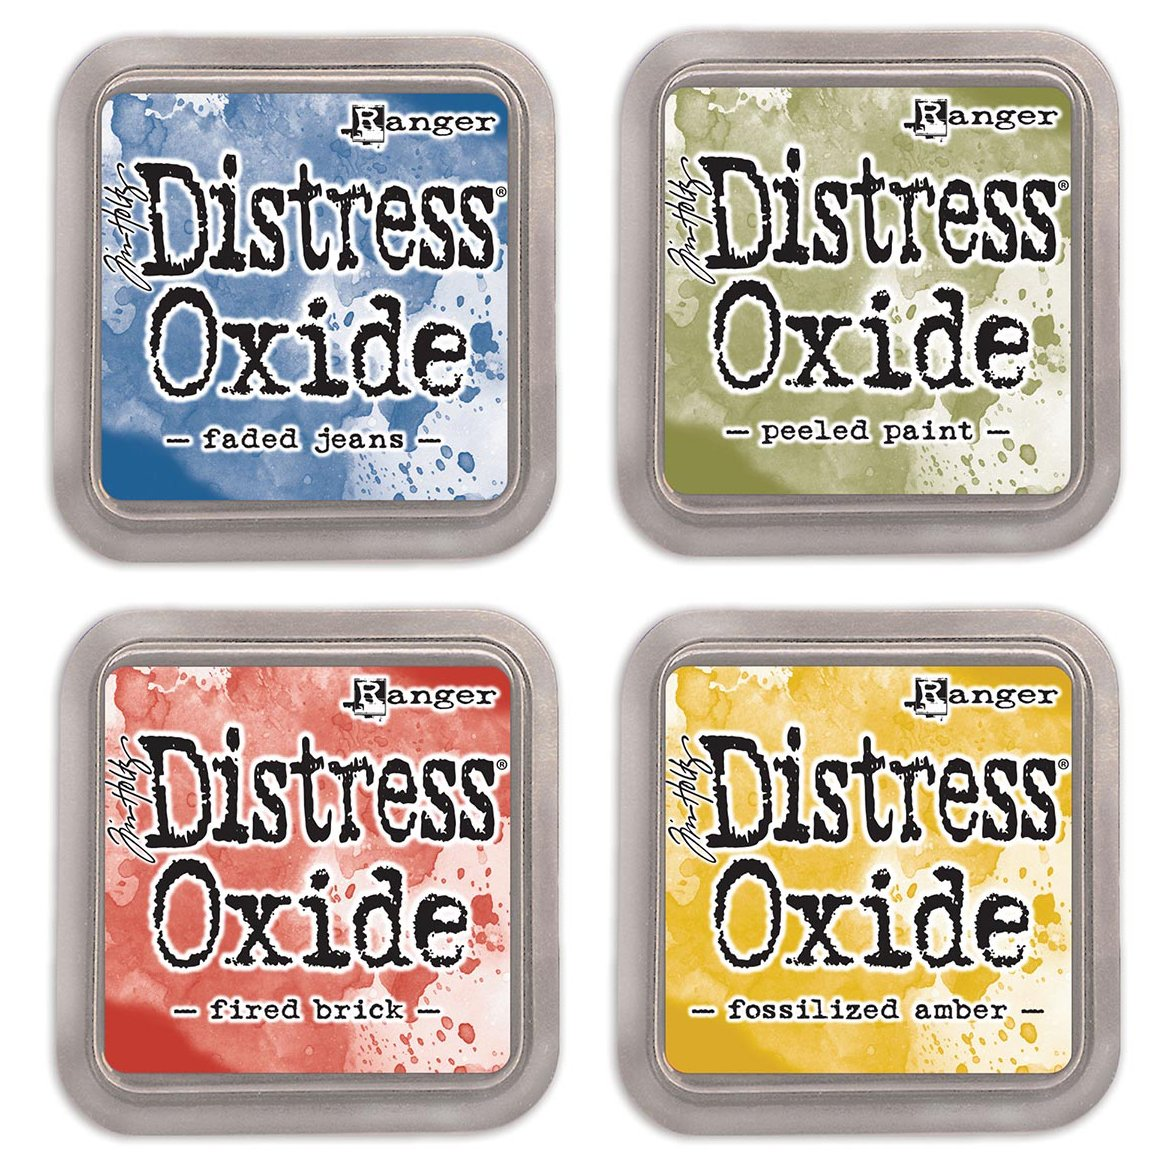 Ranger Tim Holtz Distress Oxide Bundle of 4 Ink Pads: Faded Jeans, Peeled Paint, Fired Brick, Fossilized Amber